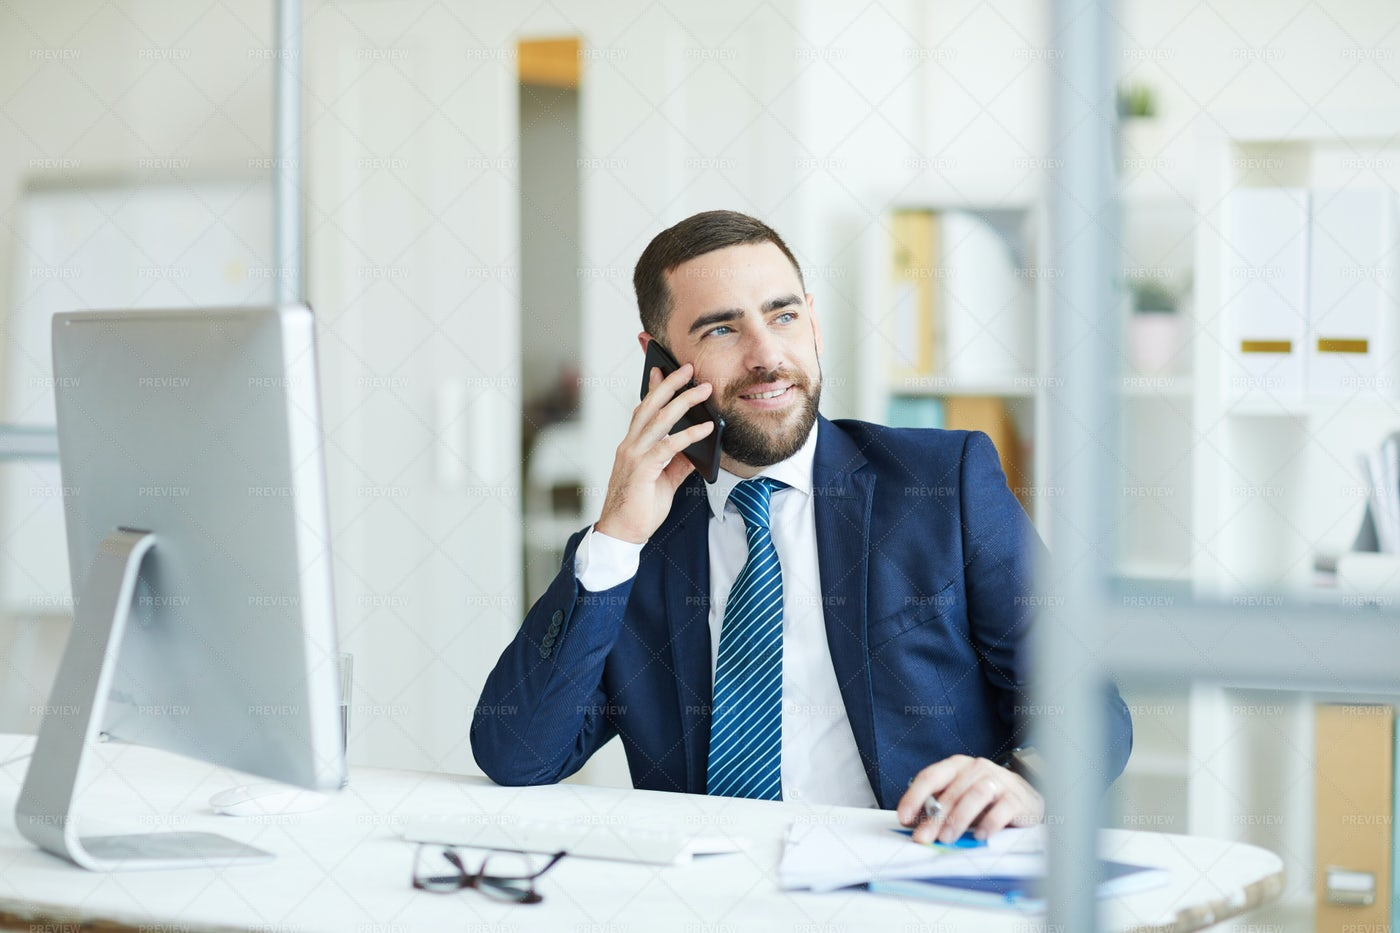 Project Manager On Phone: Stock Photos